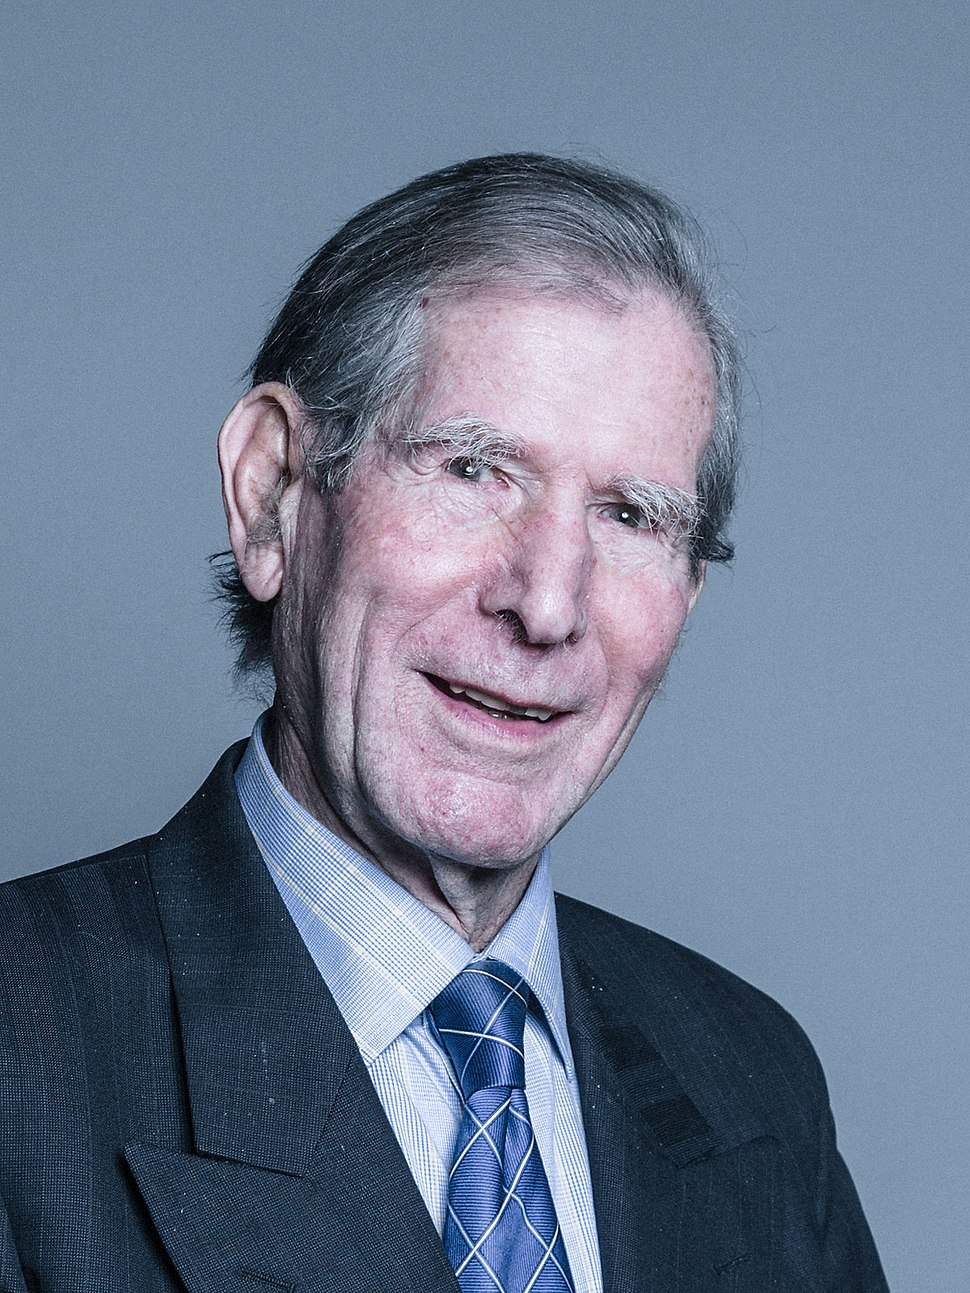 Official portrait of Lord Craig of Radley crop 2